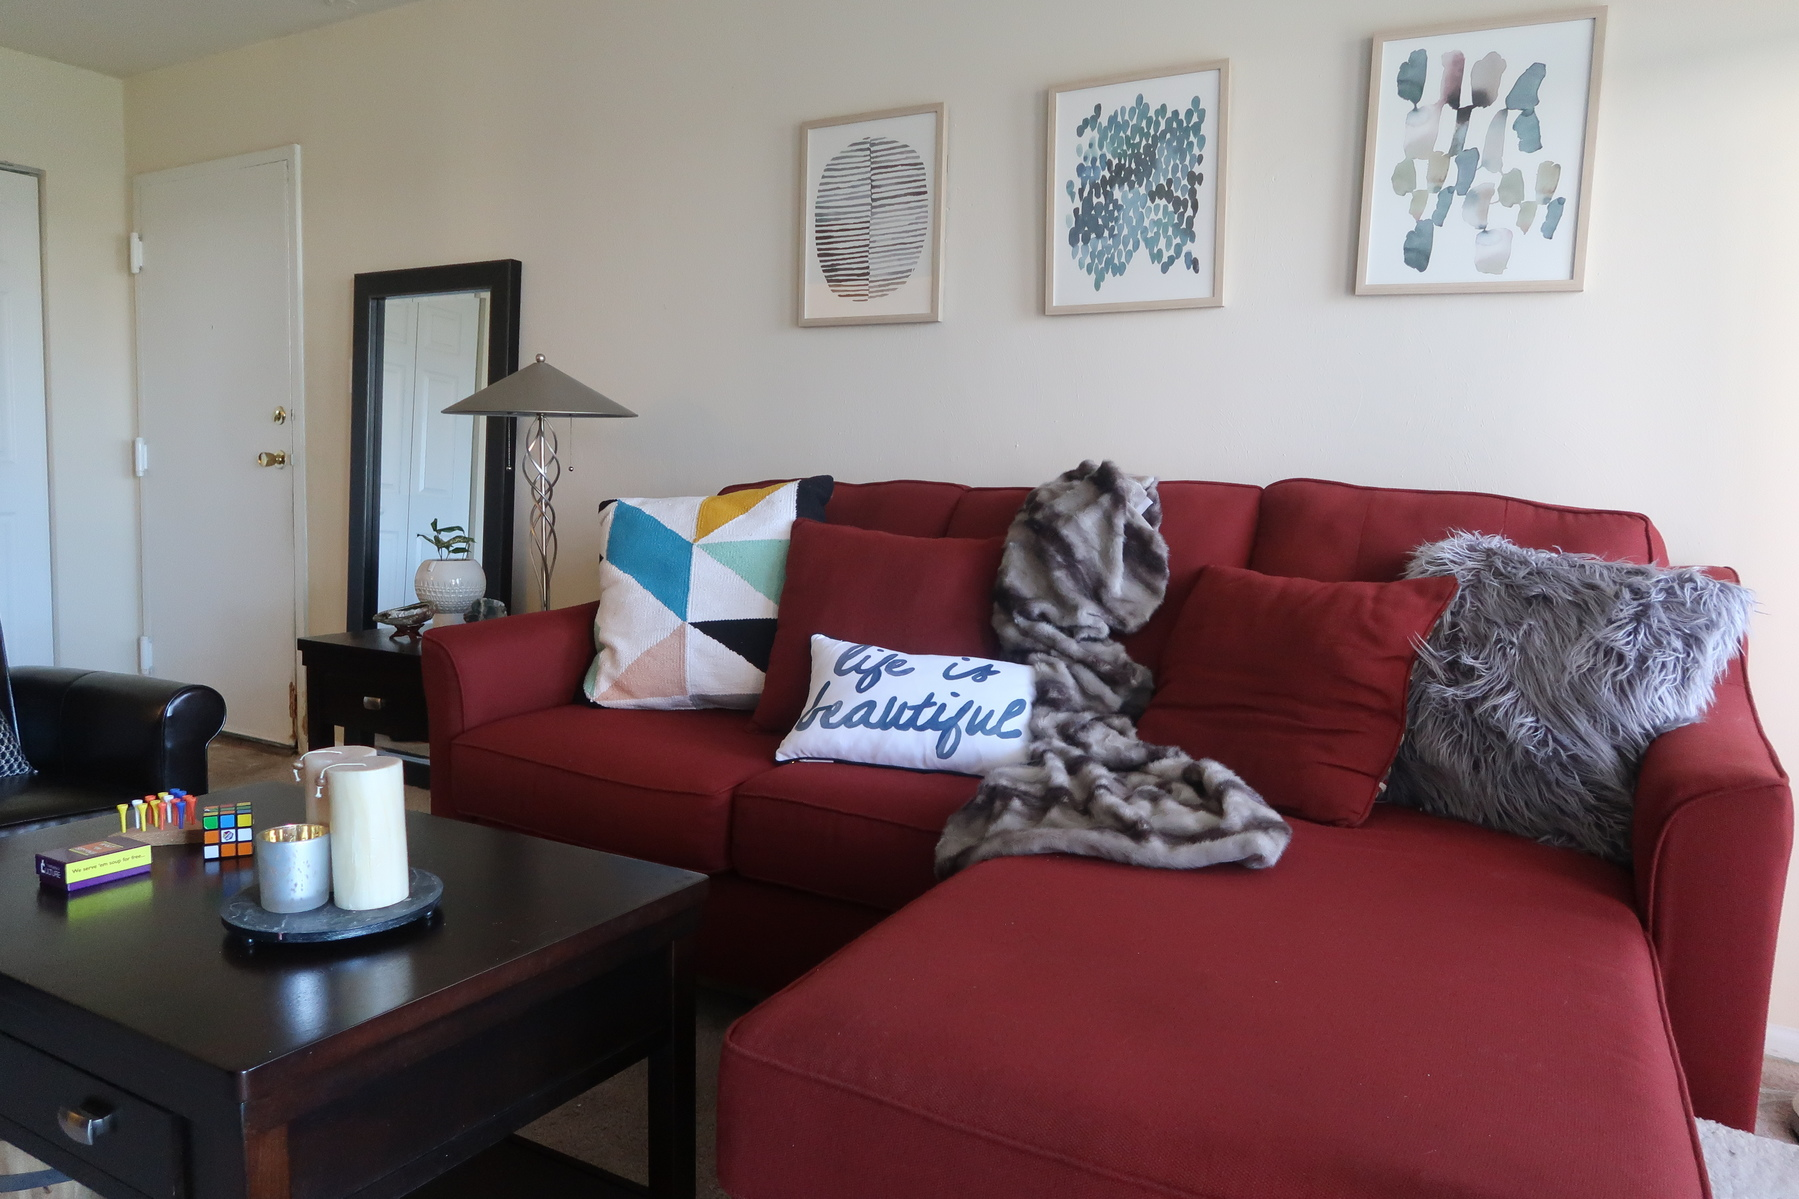 3 ways to work around a red sofa when styling your living Red living room ideas